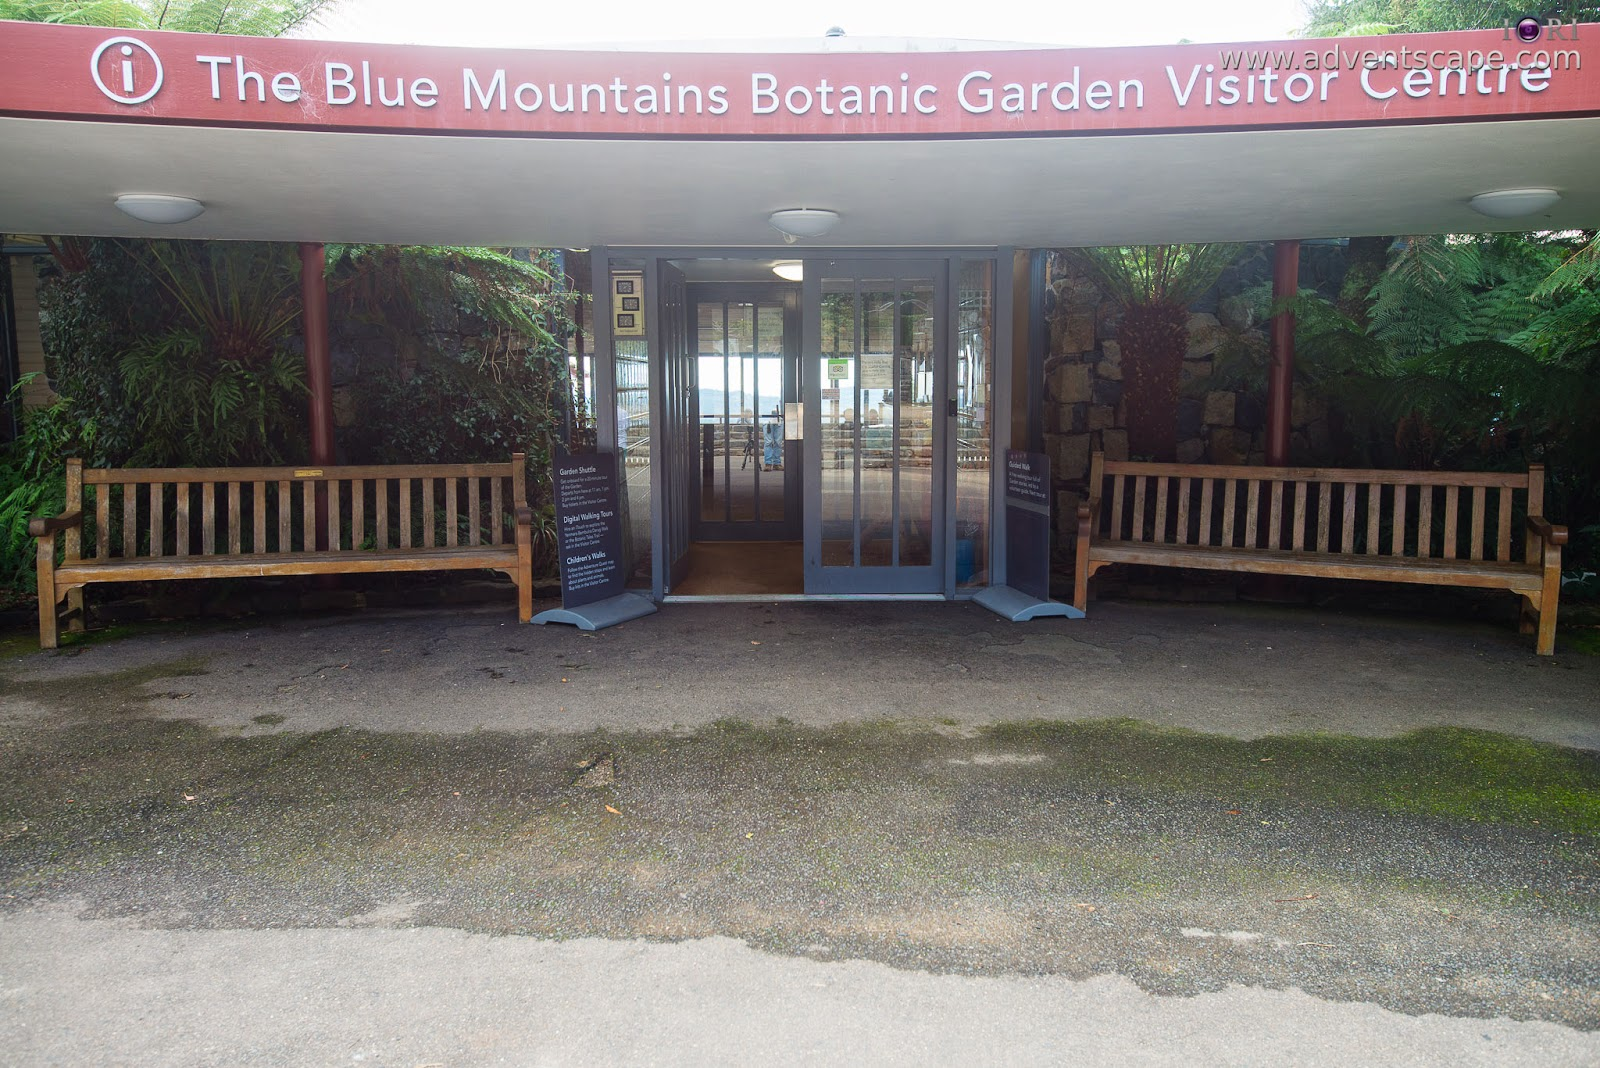 adventscape, Australia, Blue Mountain, Botanical Gardens, iori, Mount Tomah, New South Wales, NSW, Philip Avellana, tourism, travel, fall, autumn, visitor centre, information centre